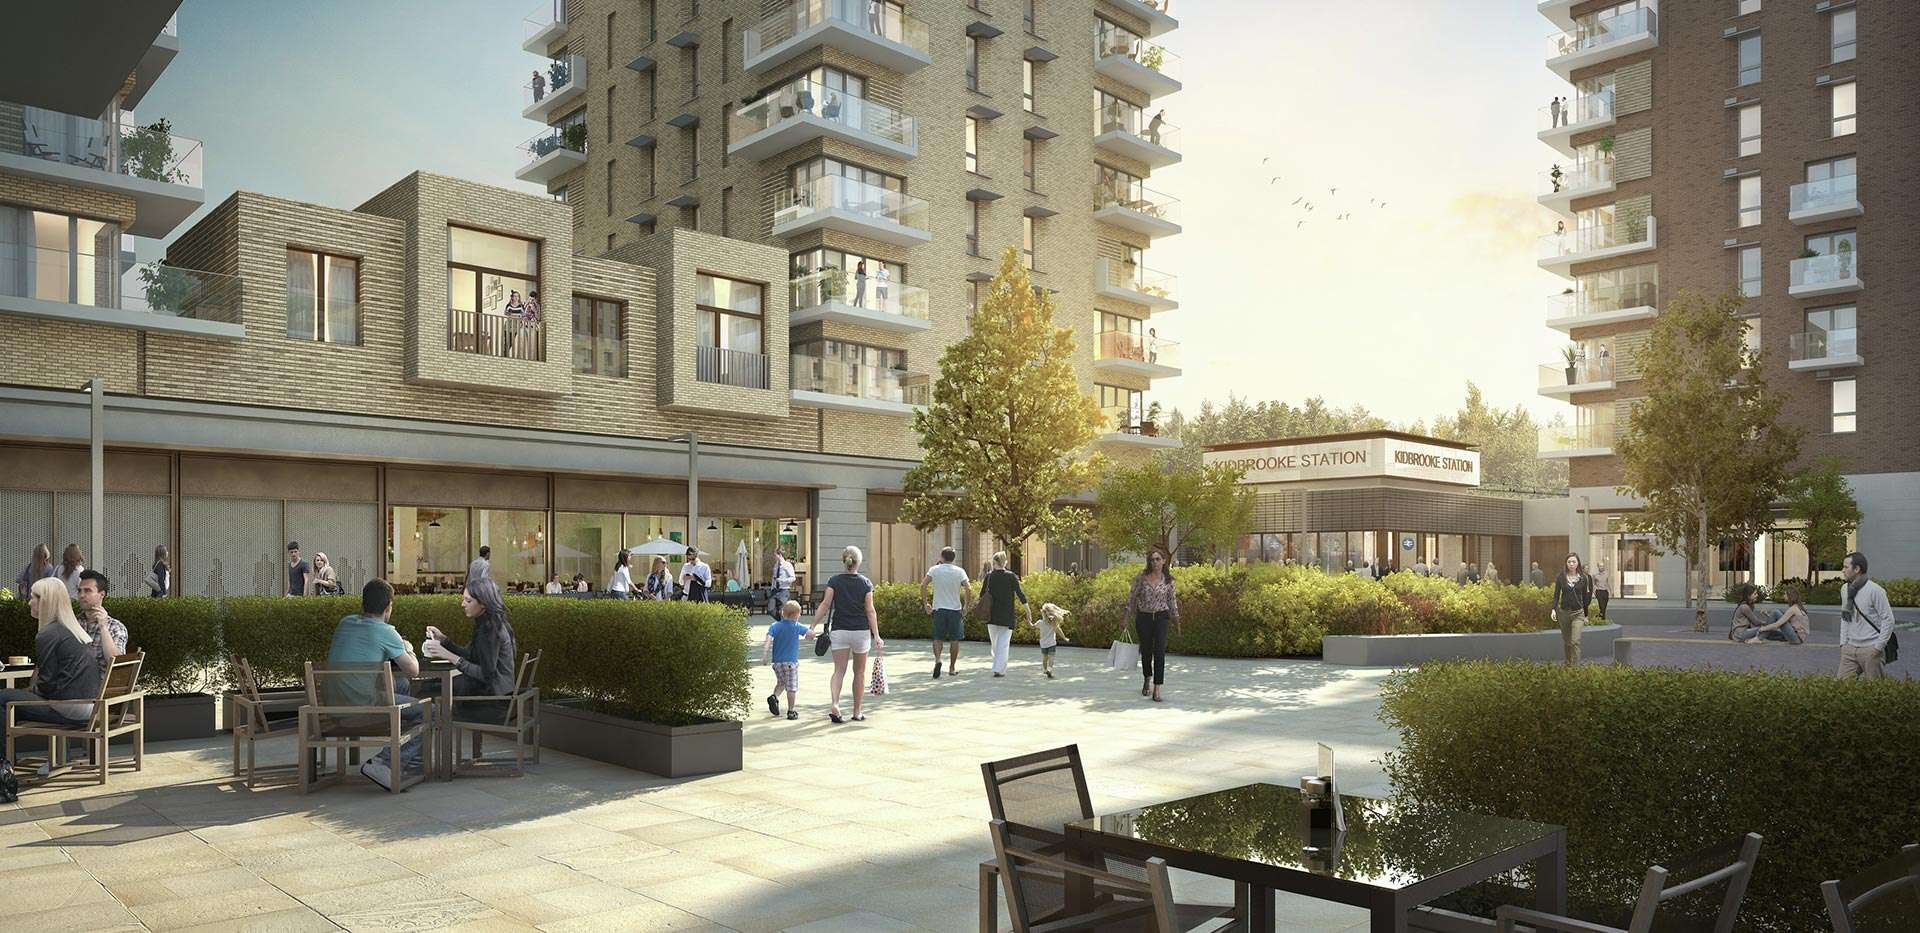 New Secured Project - Kidbrooke Phase 5